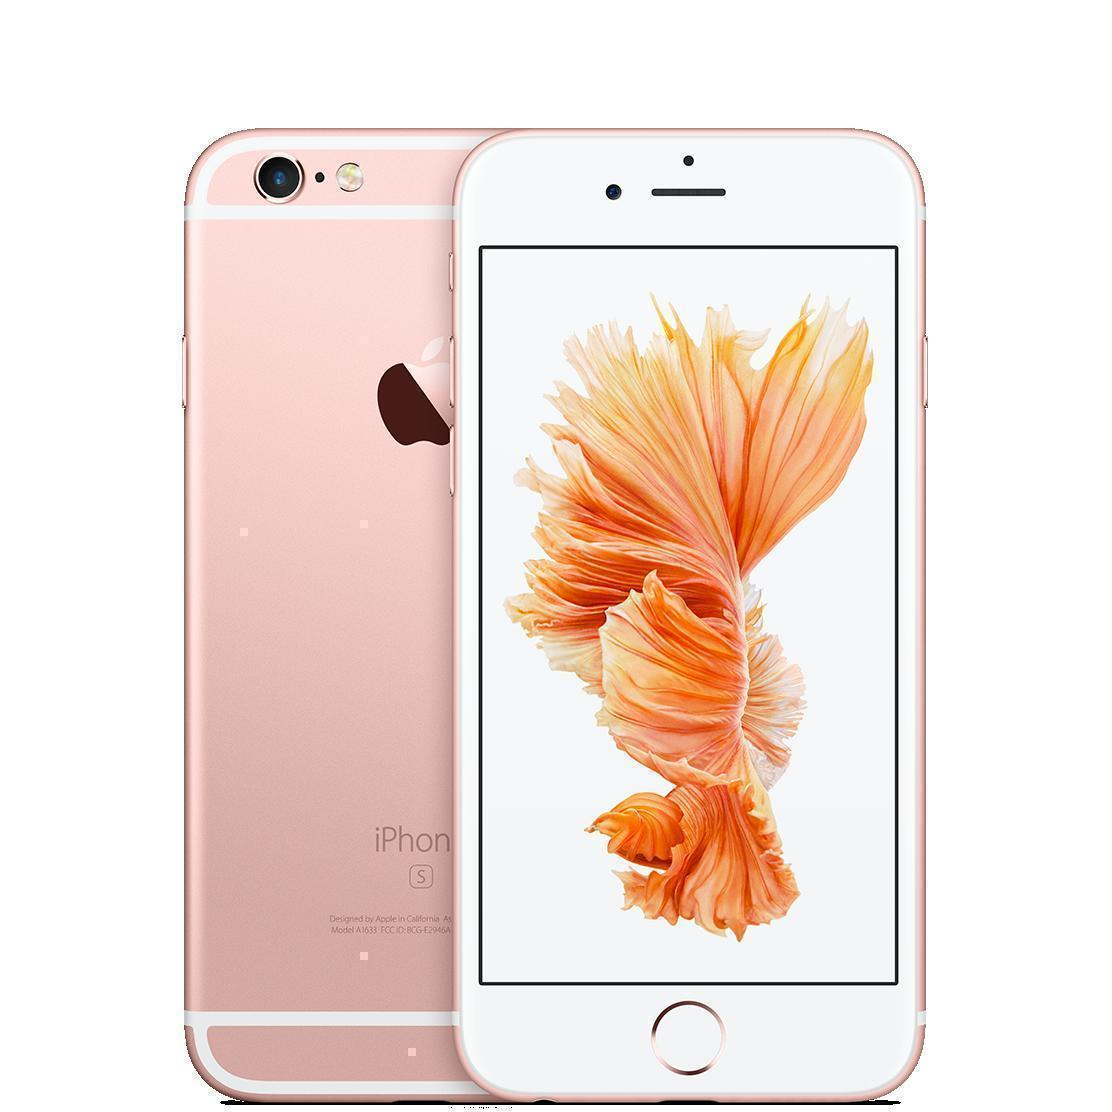 iphone 6s 16 gb rosegold ohne vertrag gebraucht. Black Bedroom Furniture Sets. Home Design Ideas